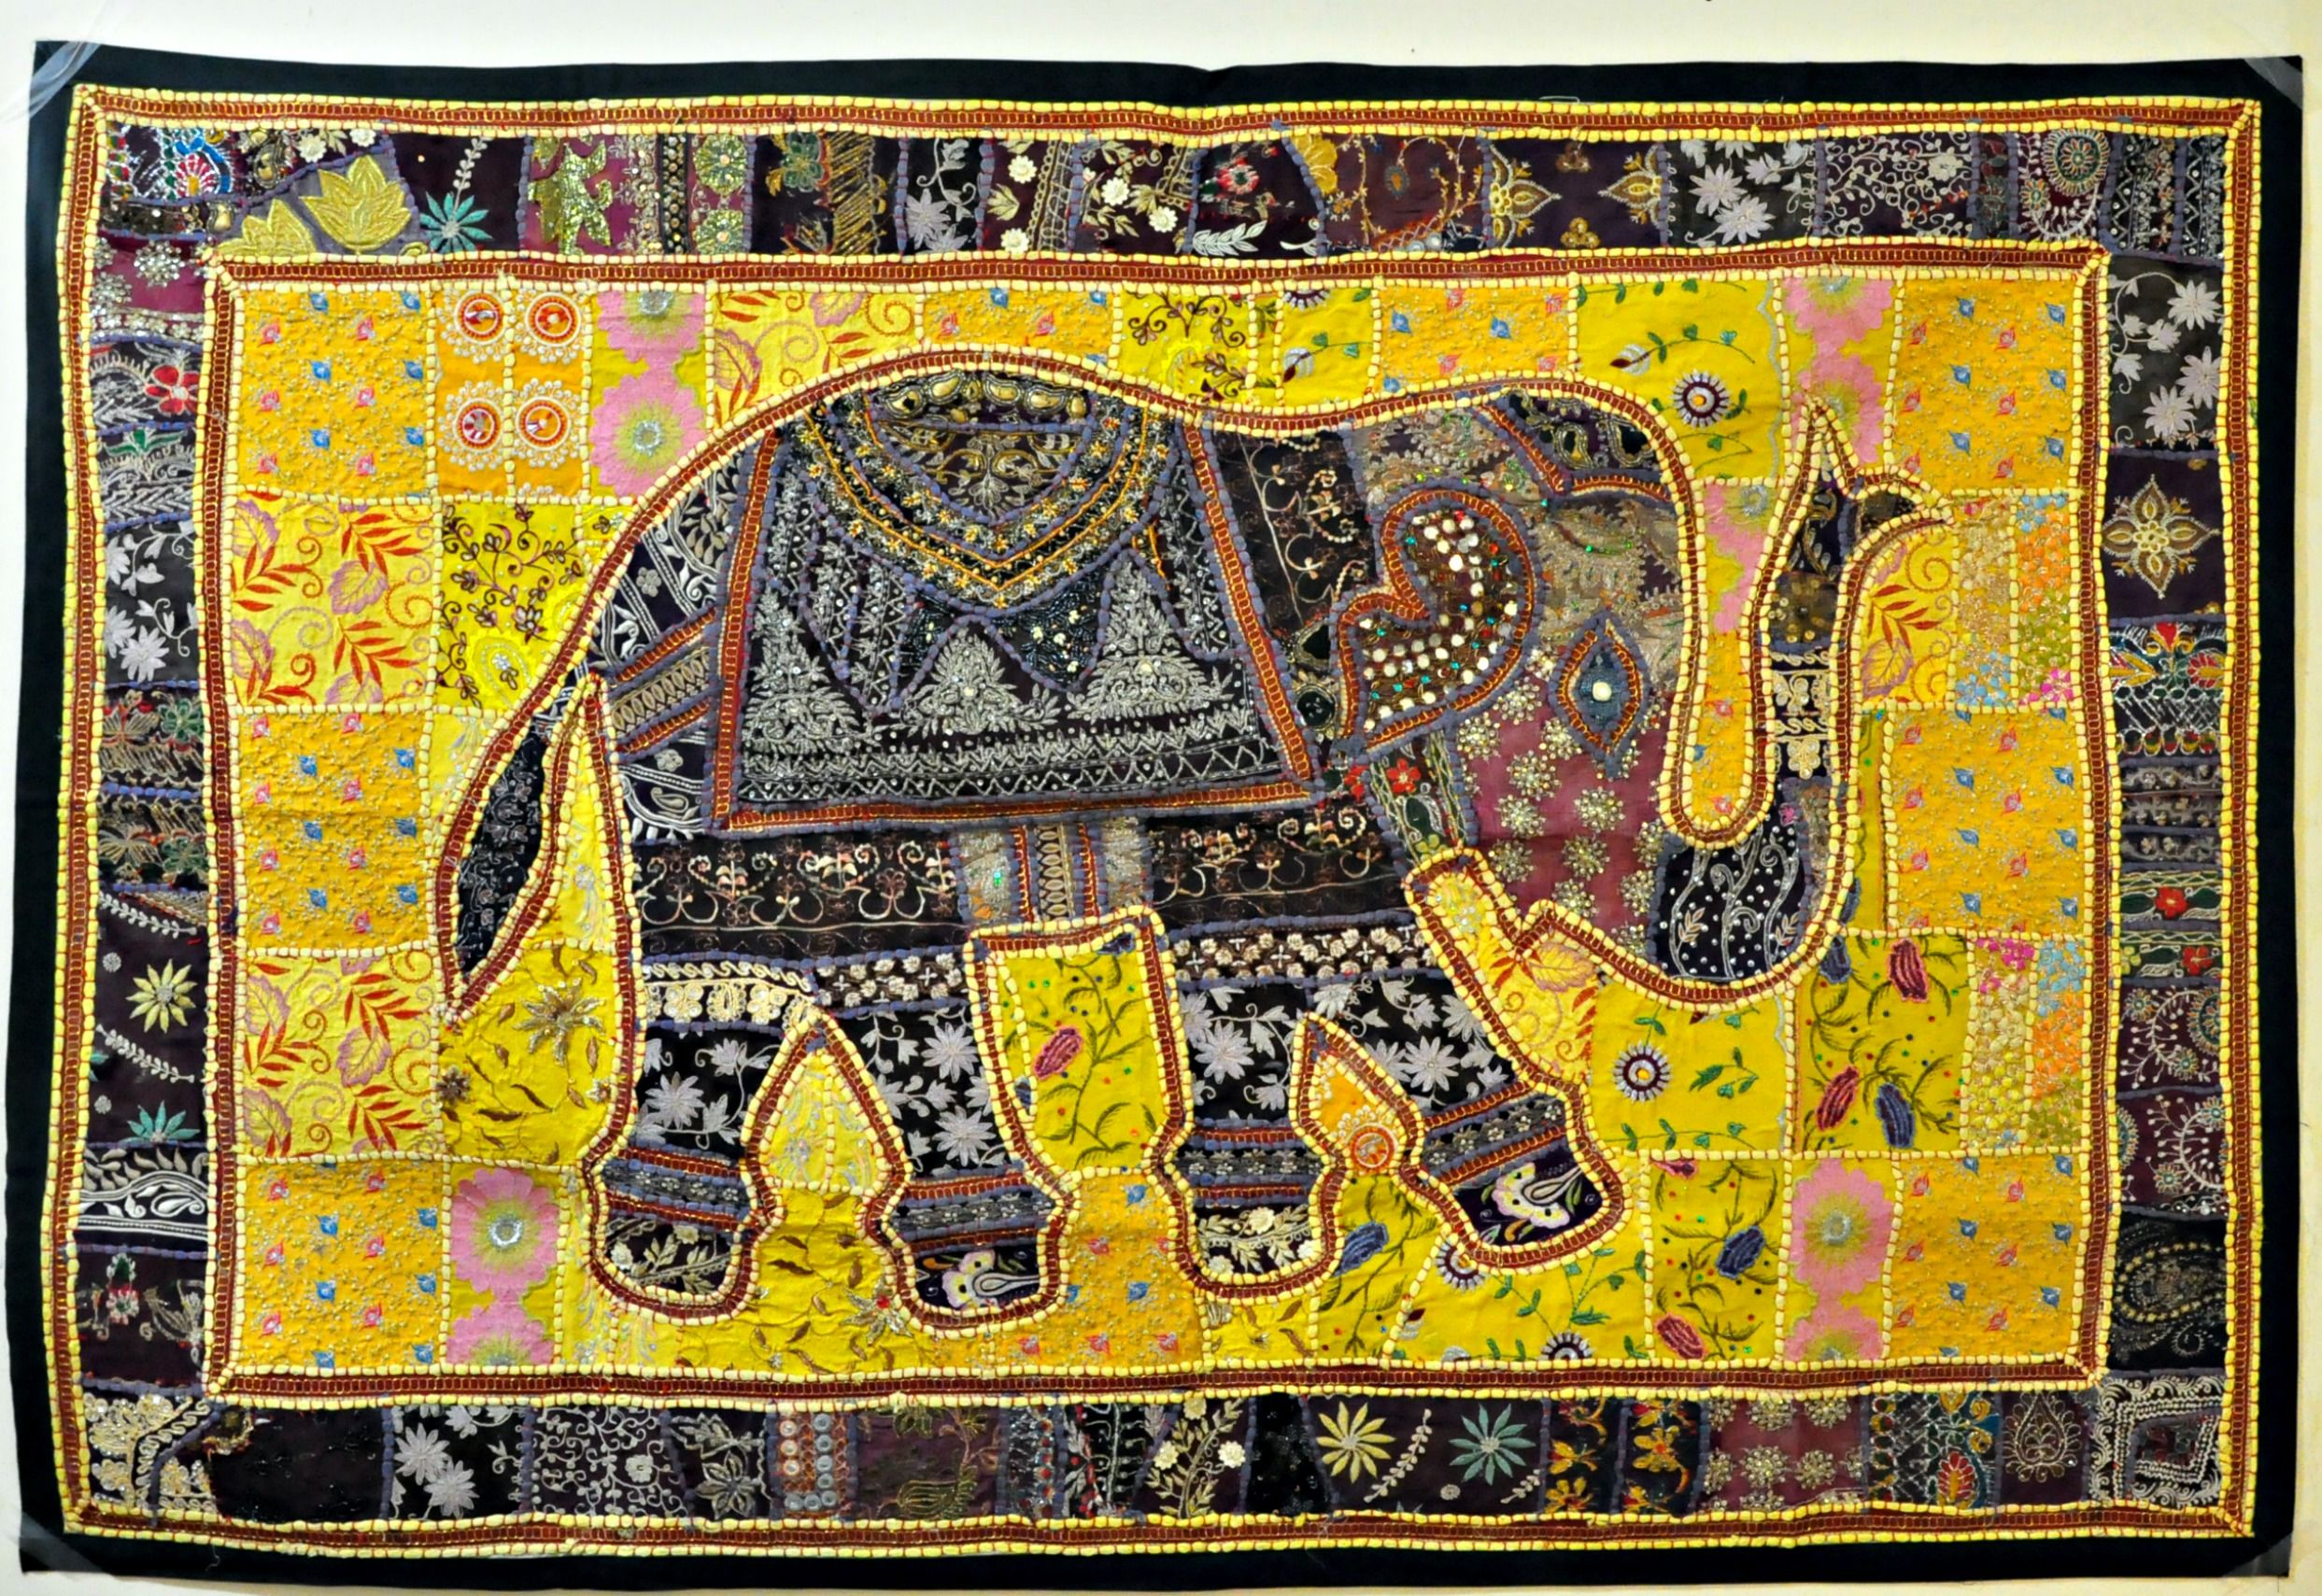 Indian Wall Hangings | Exotic | Pinterest | Wall hangings